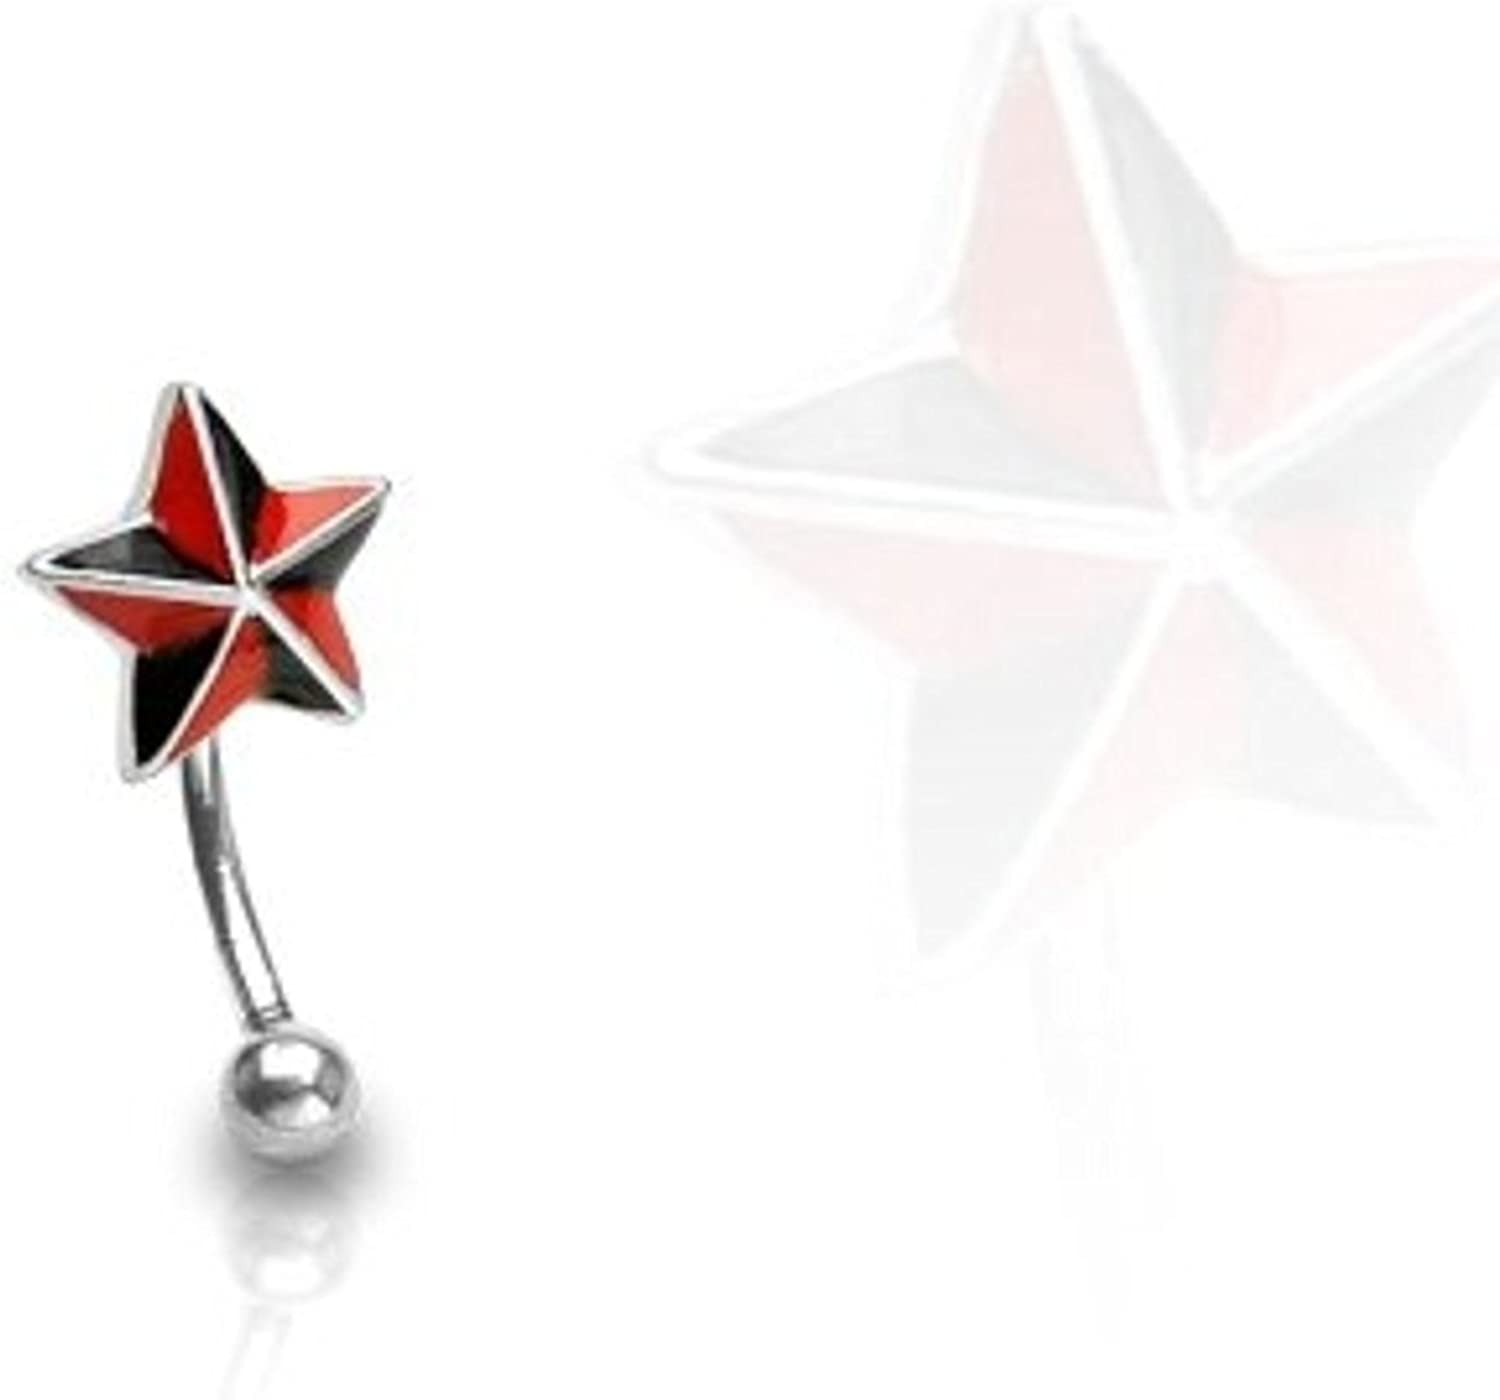 Covet Jewelry Black and Red Star 316L Surgical Steel Curve Eyebrow